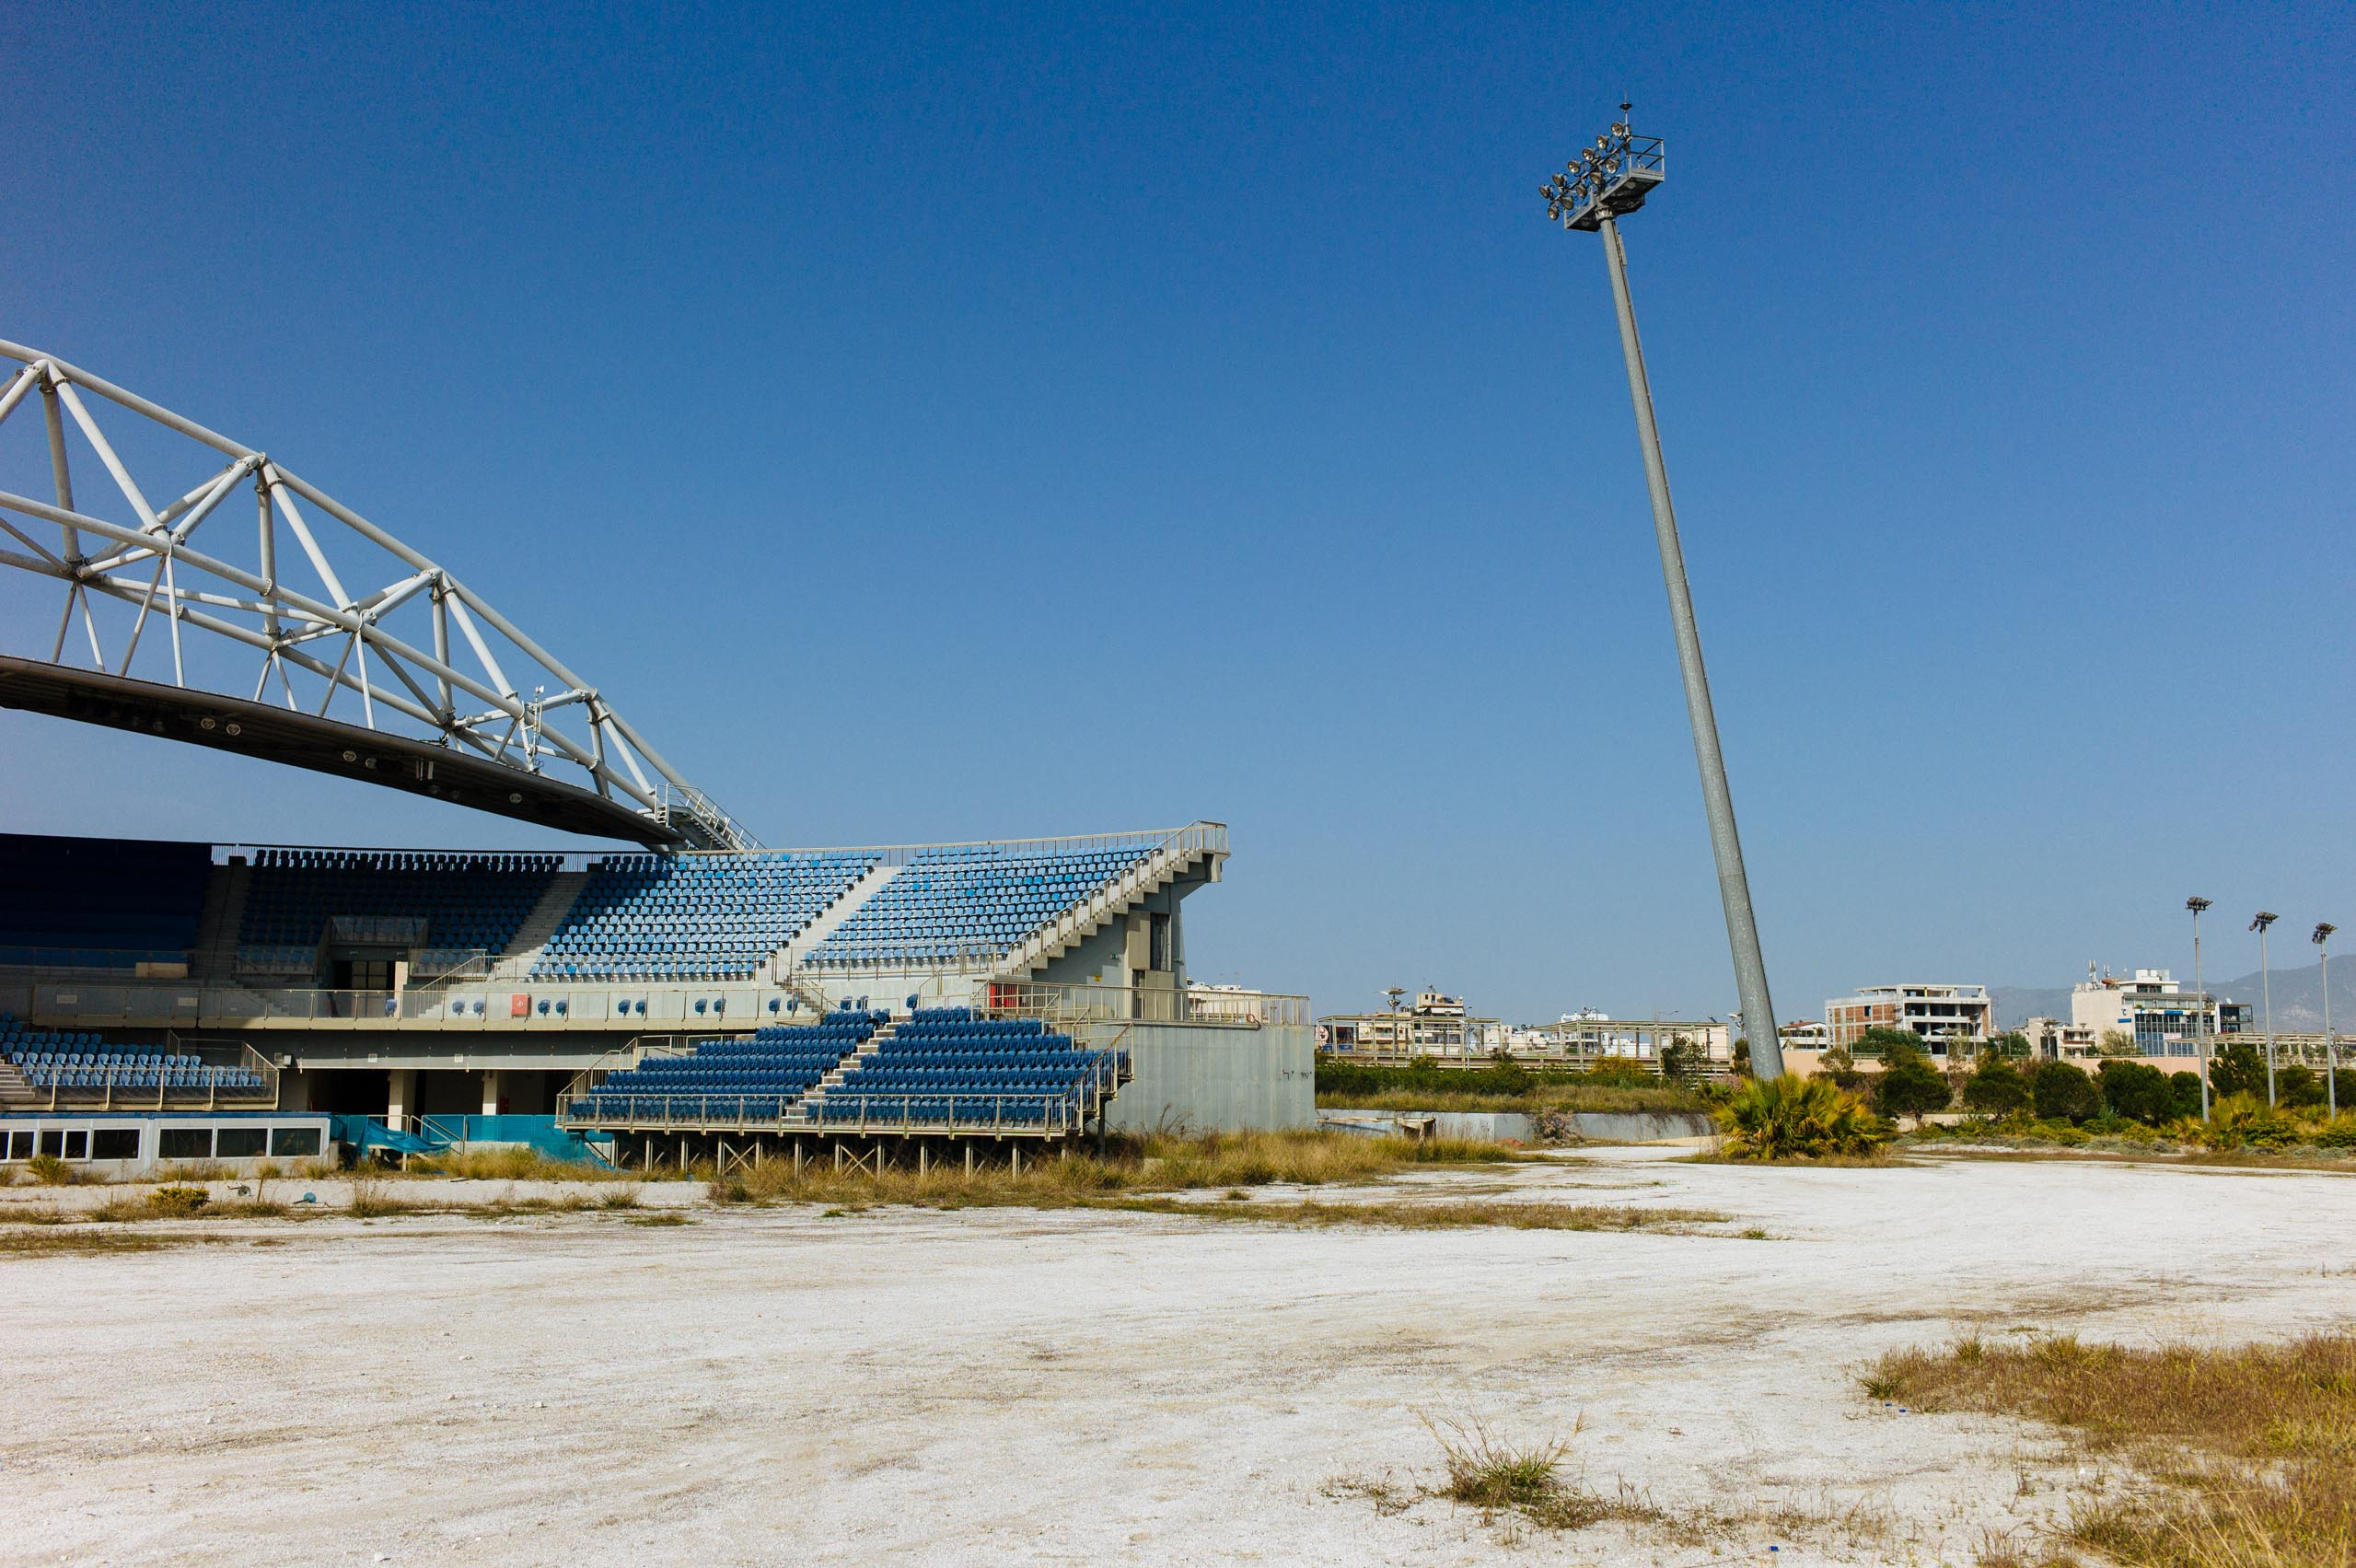 The Faliro Olympic Beach Volleyball Center in Athens, which hosted the 2004 Summer Olympics, photographed in April 2012.